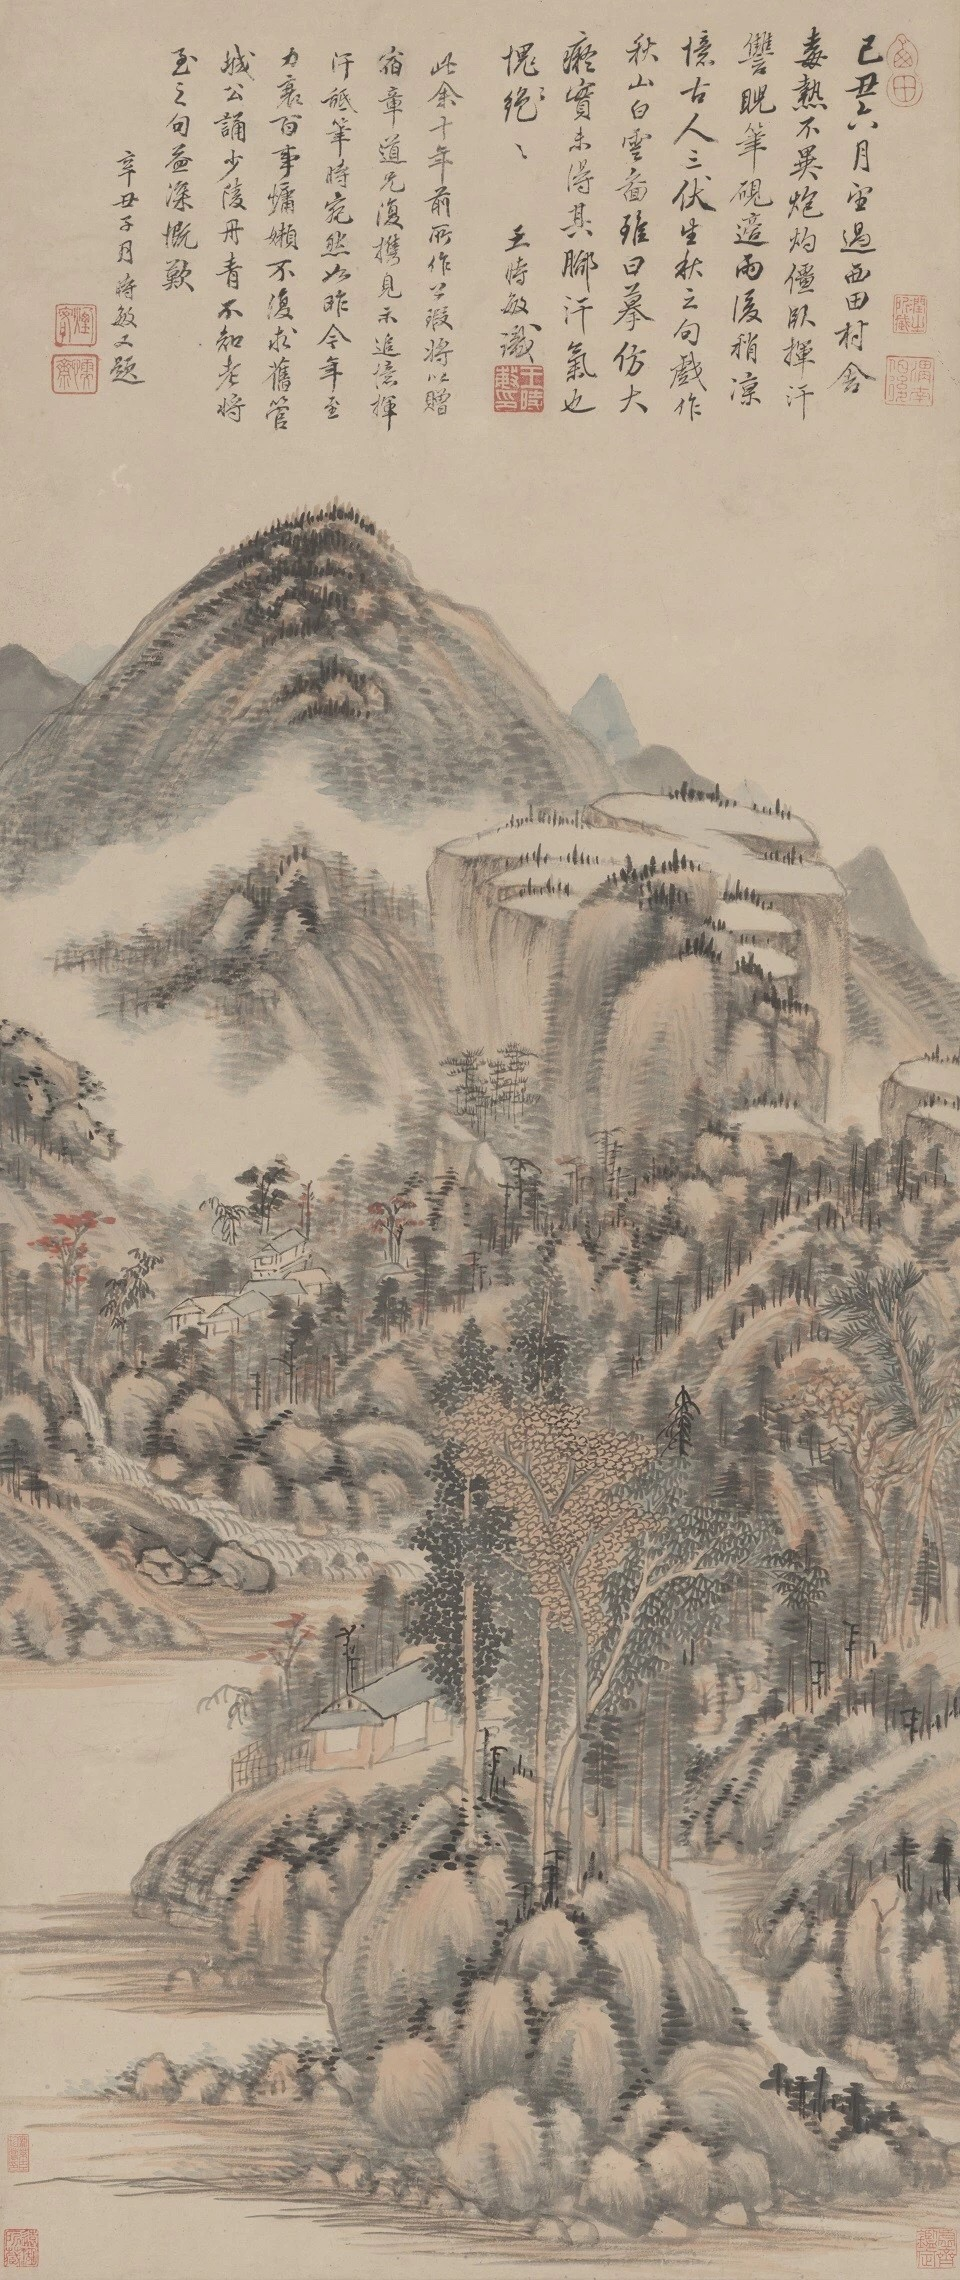 Wang Shimin: Autumn Mountains and White Clouds